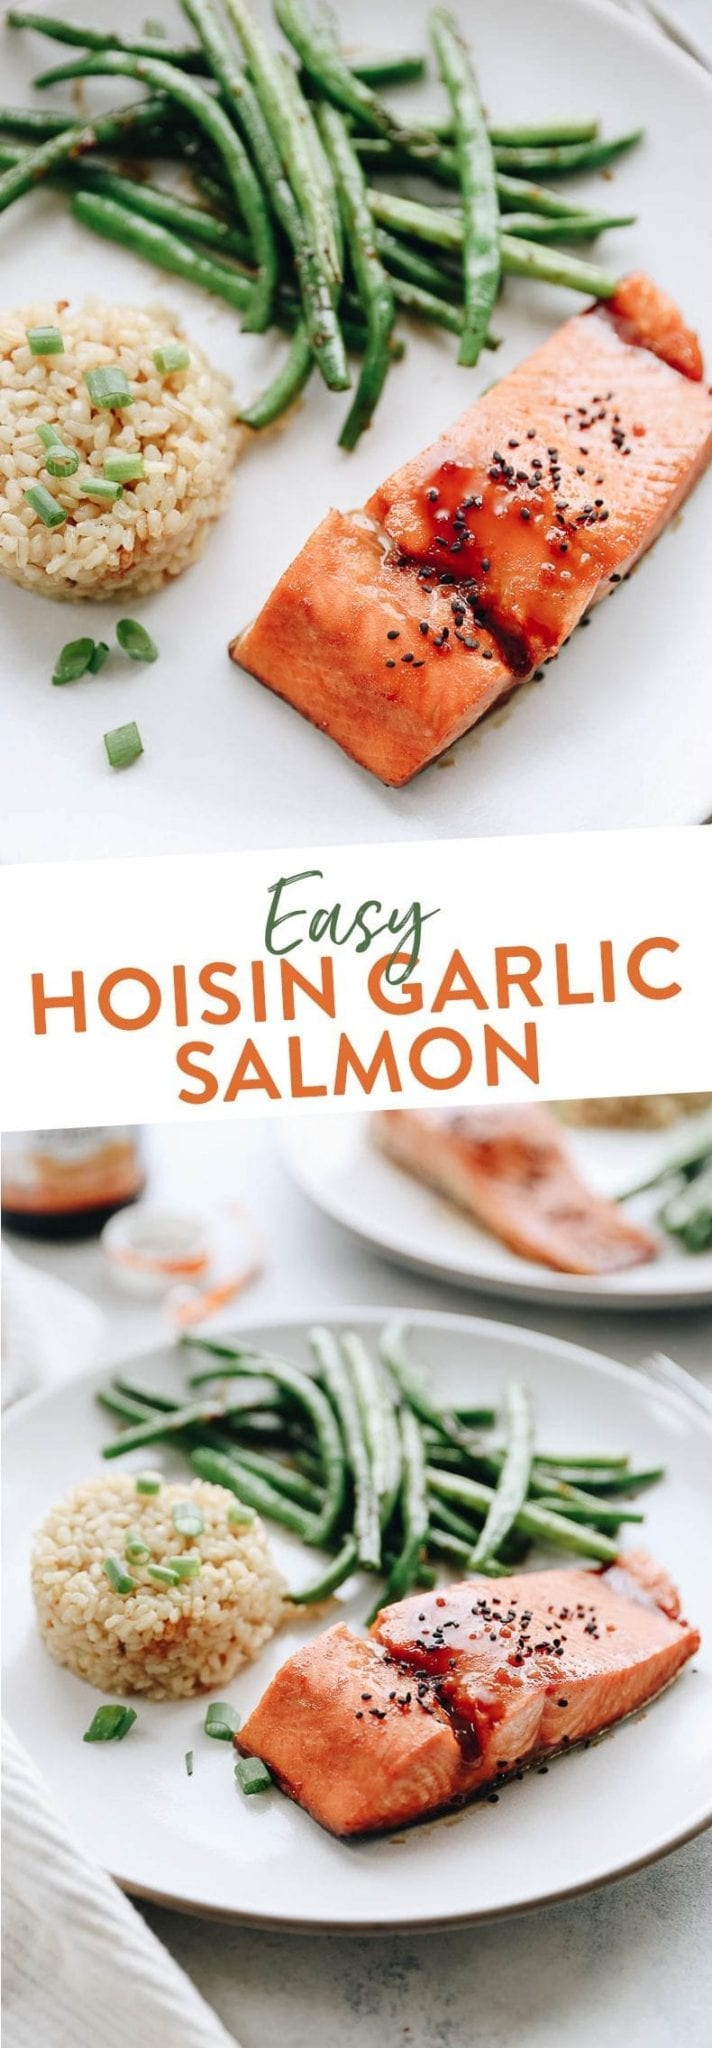 Looking for an easy weeknight meal? Look no further than this Easy Hoisin Garlic Salmon with a side of coconut rice and garlic green beans. It sounds fancy but it's actually super simple and delicious!